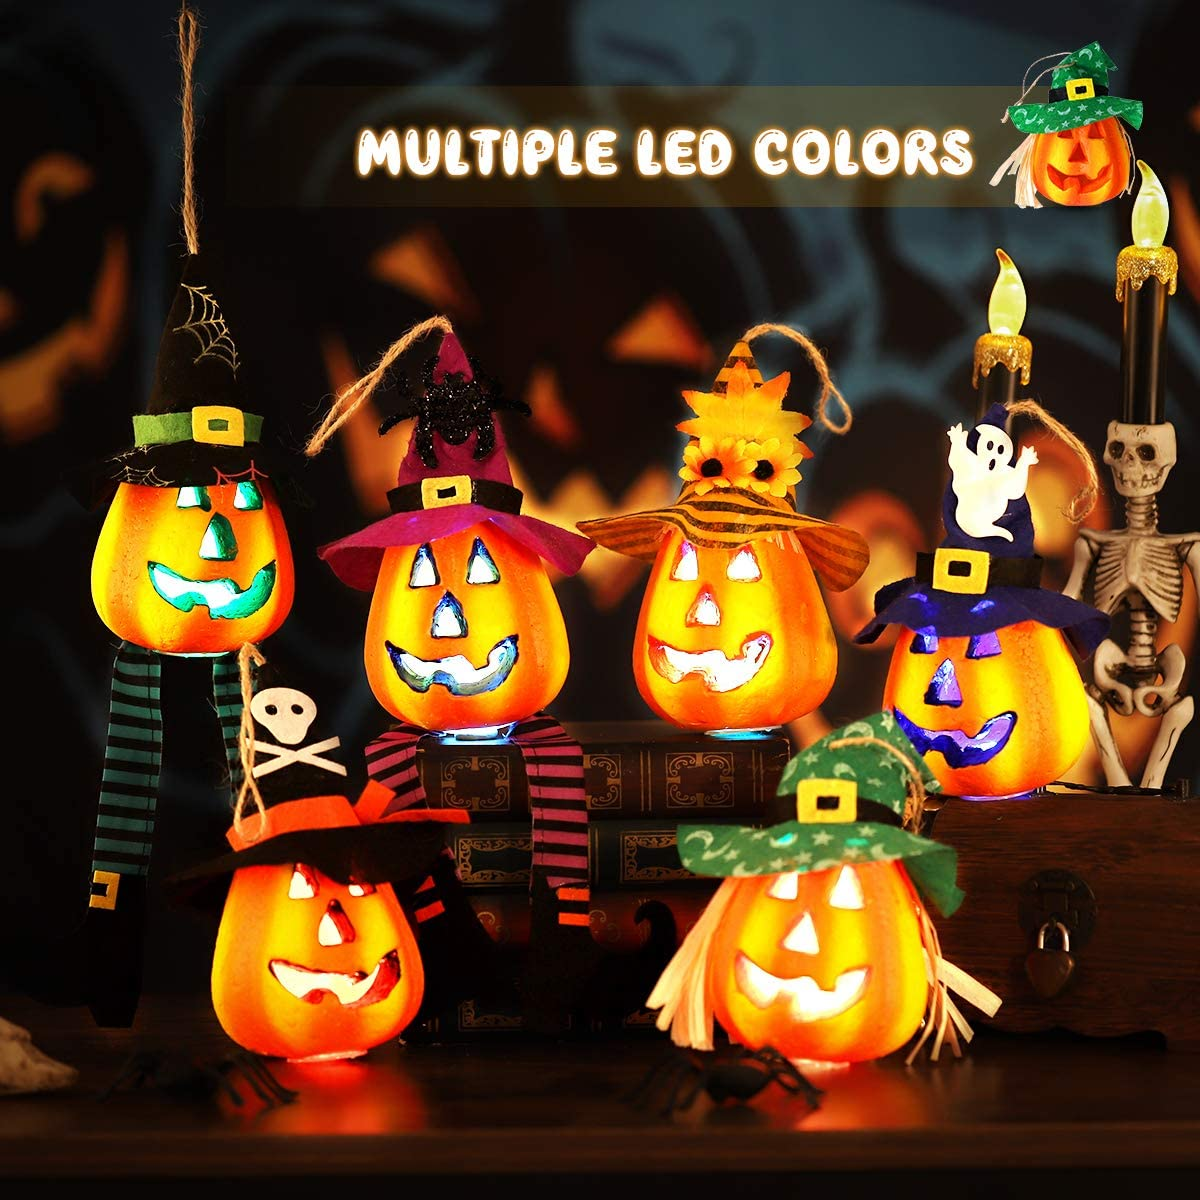 Halloween Pumpkin Lanterns, Light Up Foam Pumpkin Jacko Lanterns Halloween Lamps for Halloween Decorations, 6 Pack